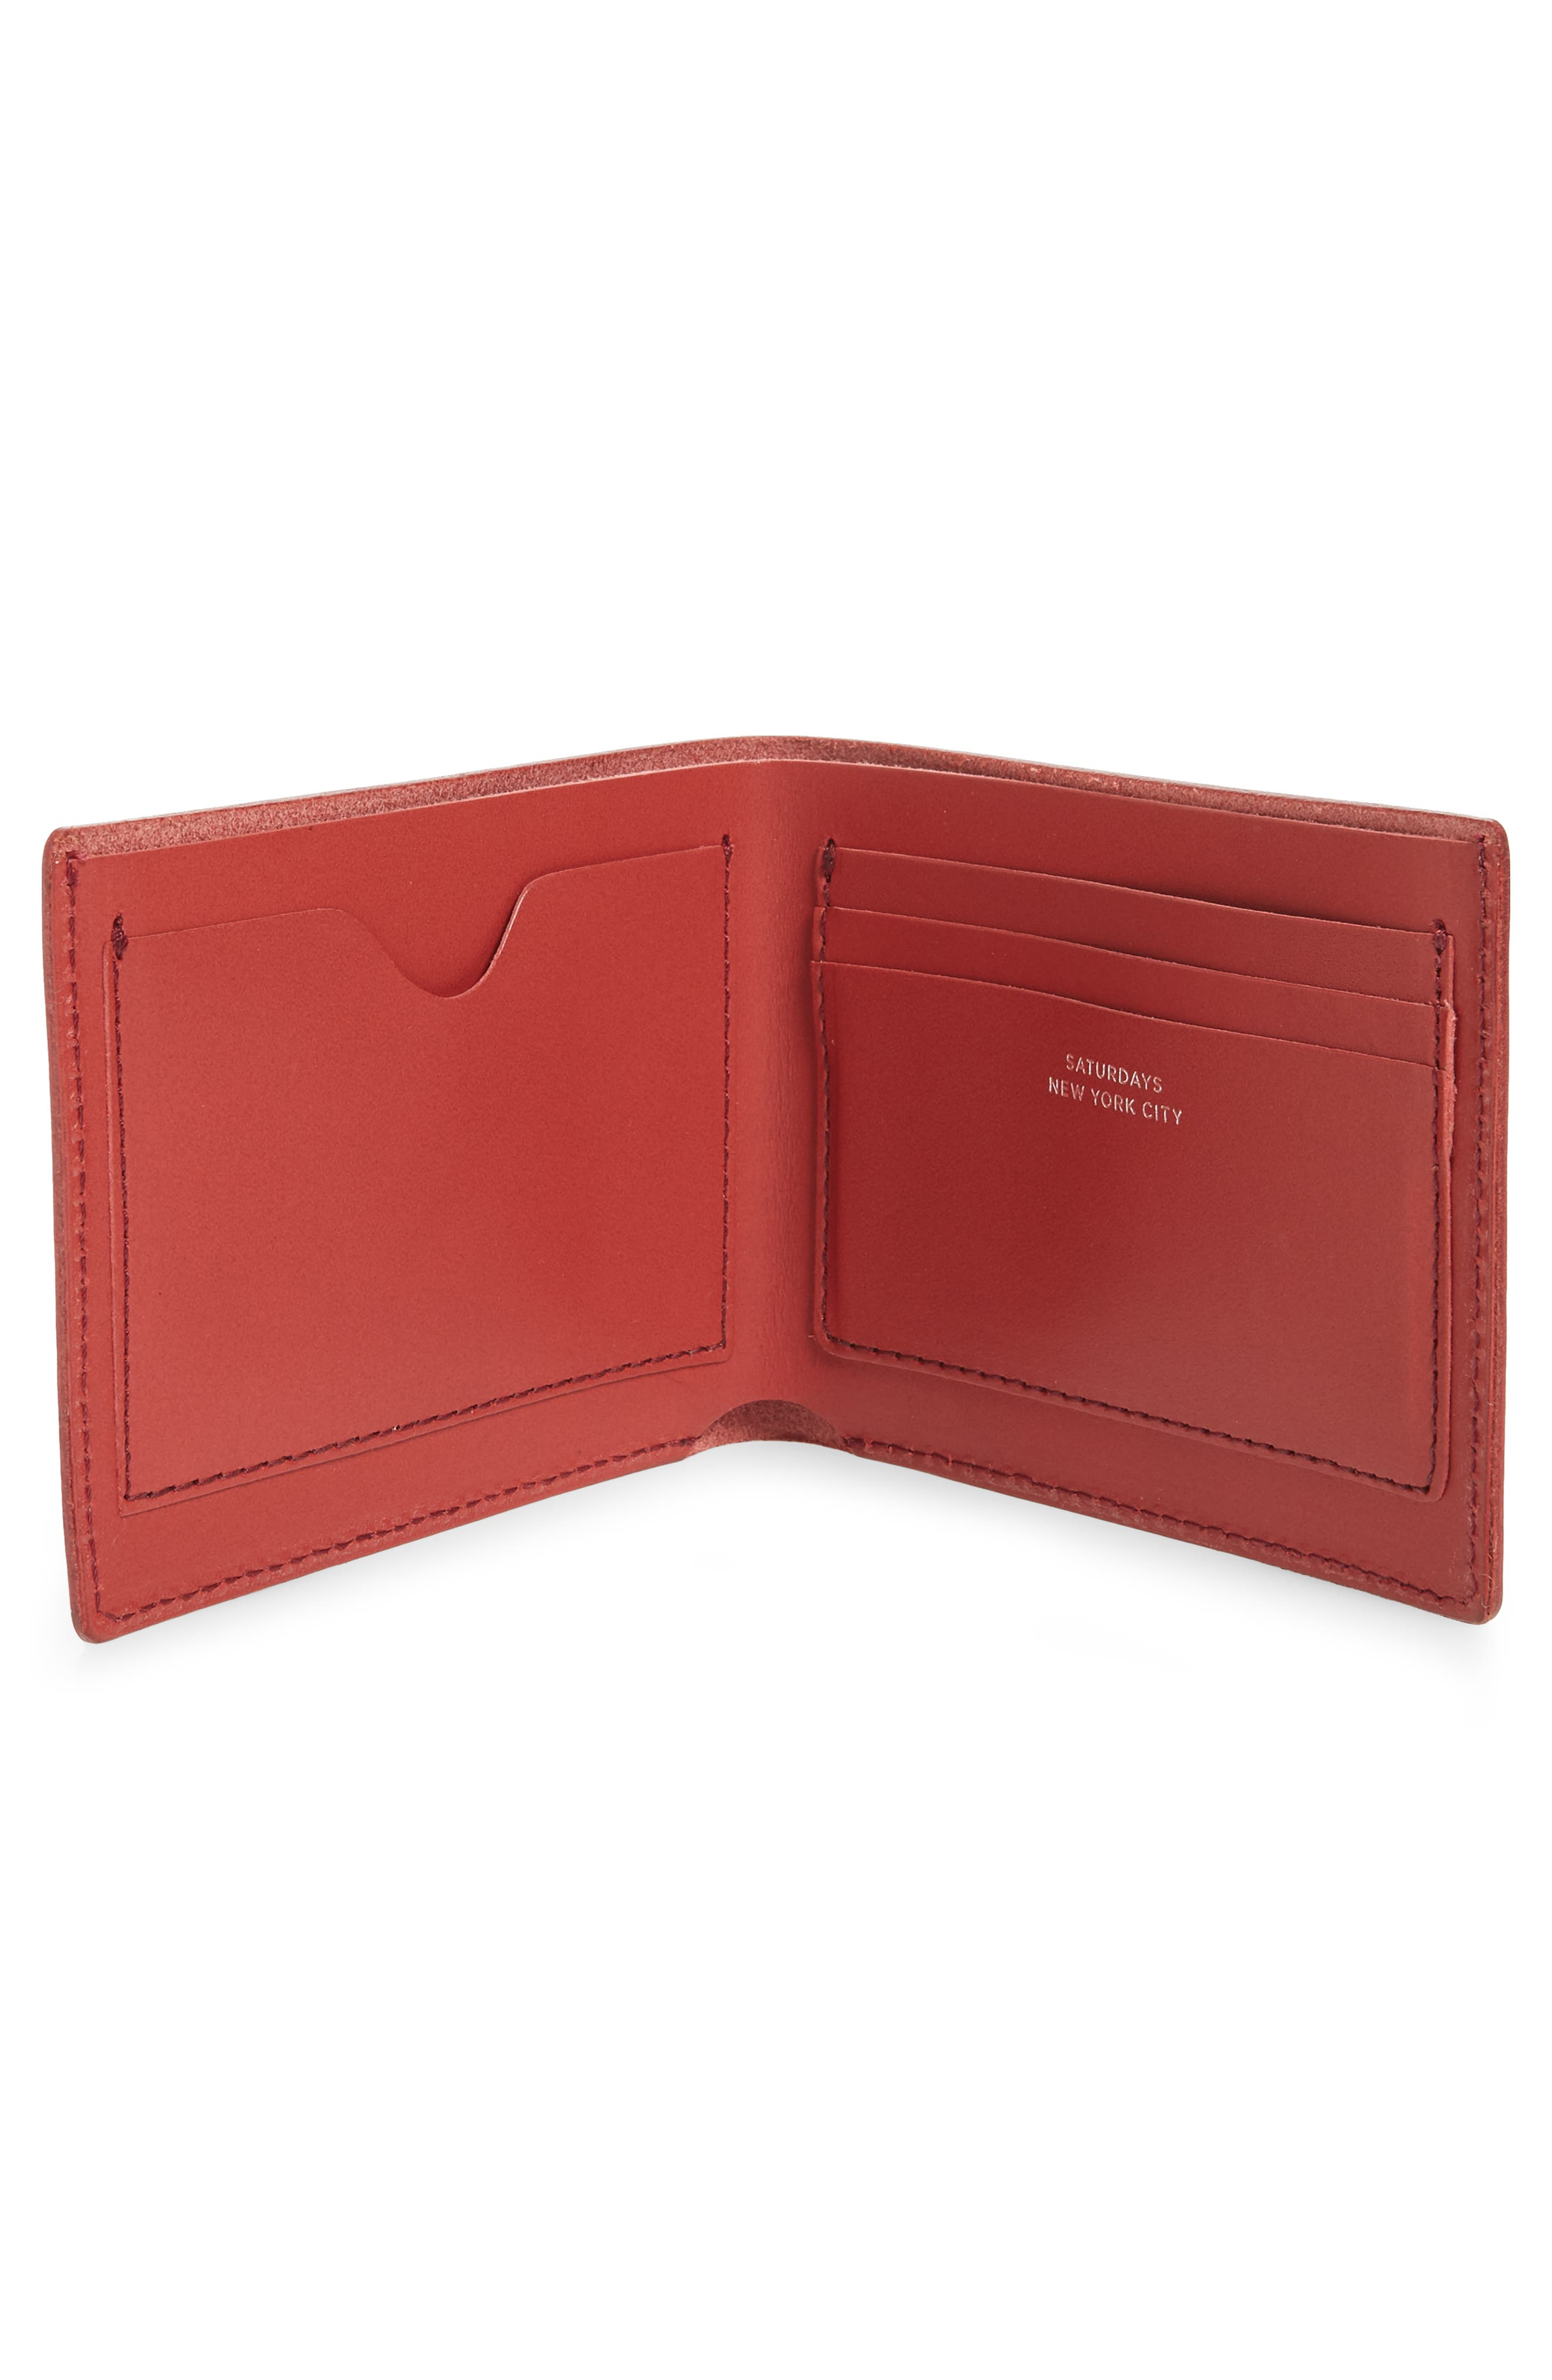 SATURDAYS NYC, Bifold Leather Wallet, Alternate thumbnail 2, color, TRUE RED